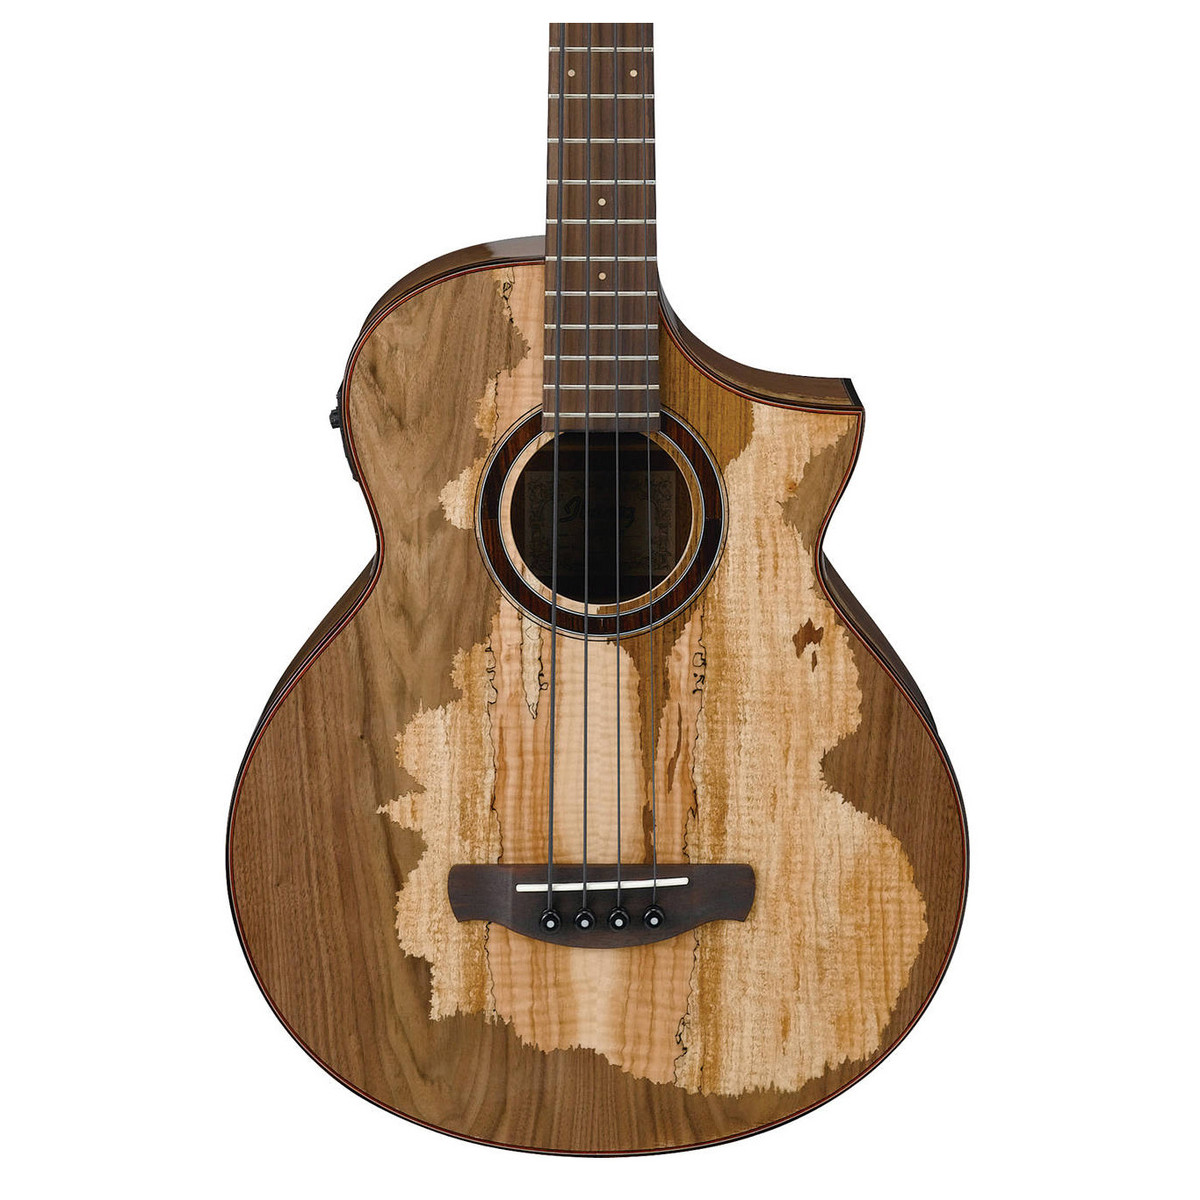 ibanez aewb50 electro acoustic bass multi wood mosaic b stock at gear4music. Black Bedroom Furniture Sets. Home Design Ideas